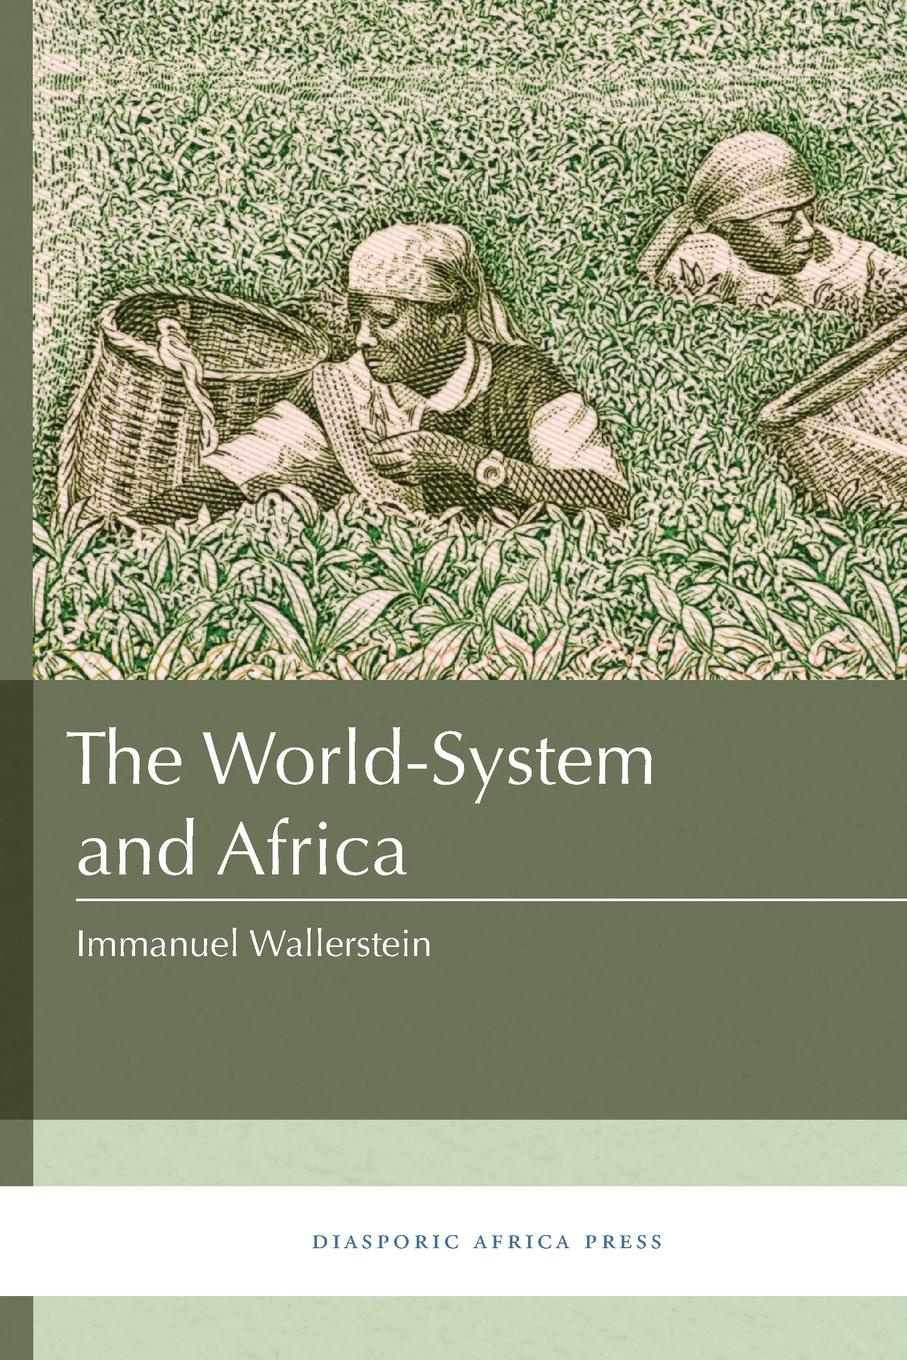 Immanuel Wallerstein. The World-System and Africa